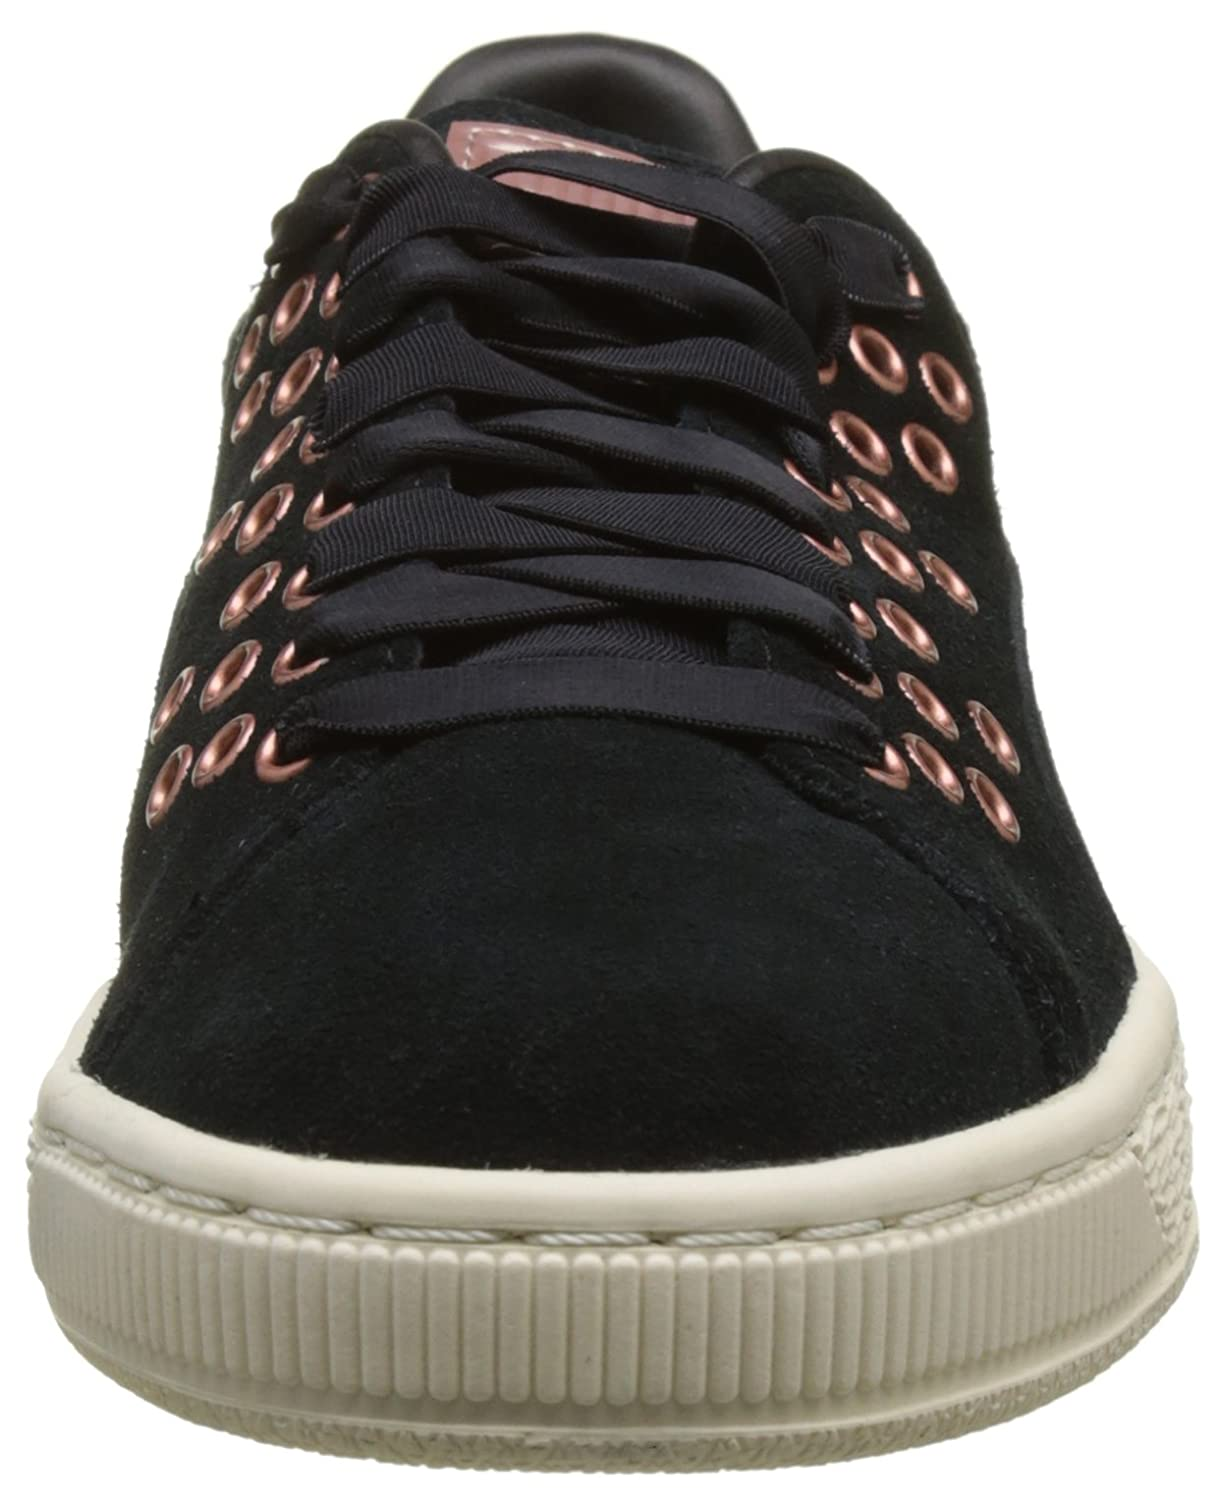 8d4ad4a535eca9 Puma Women s Suede XL Lace Vr Wn S Sneakers  Buy Online at Low Prices in  India - Amazon.in